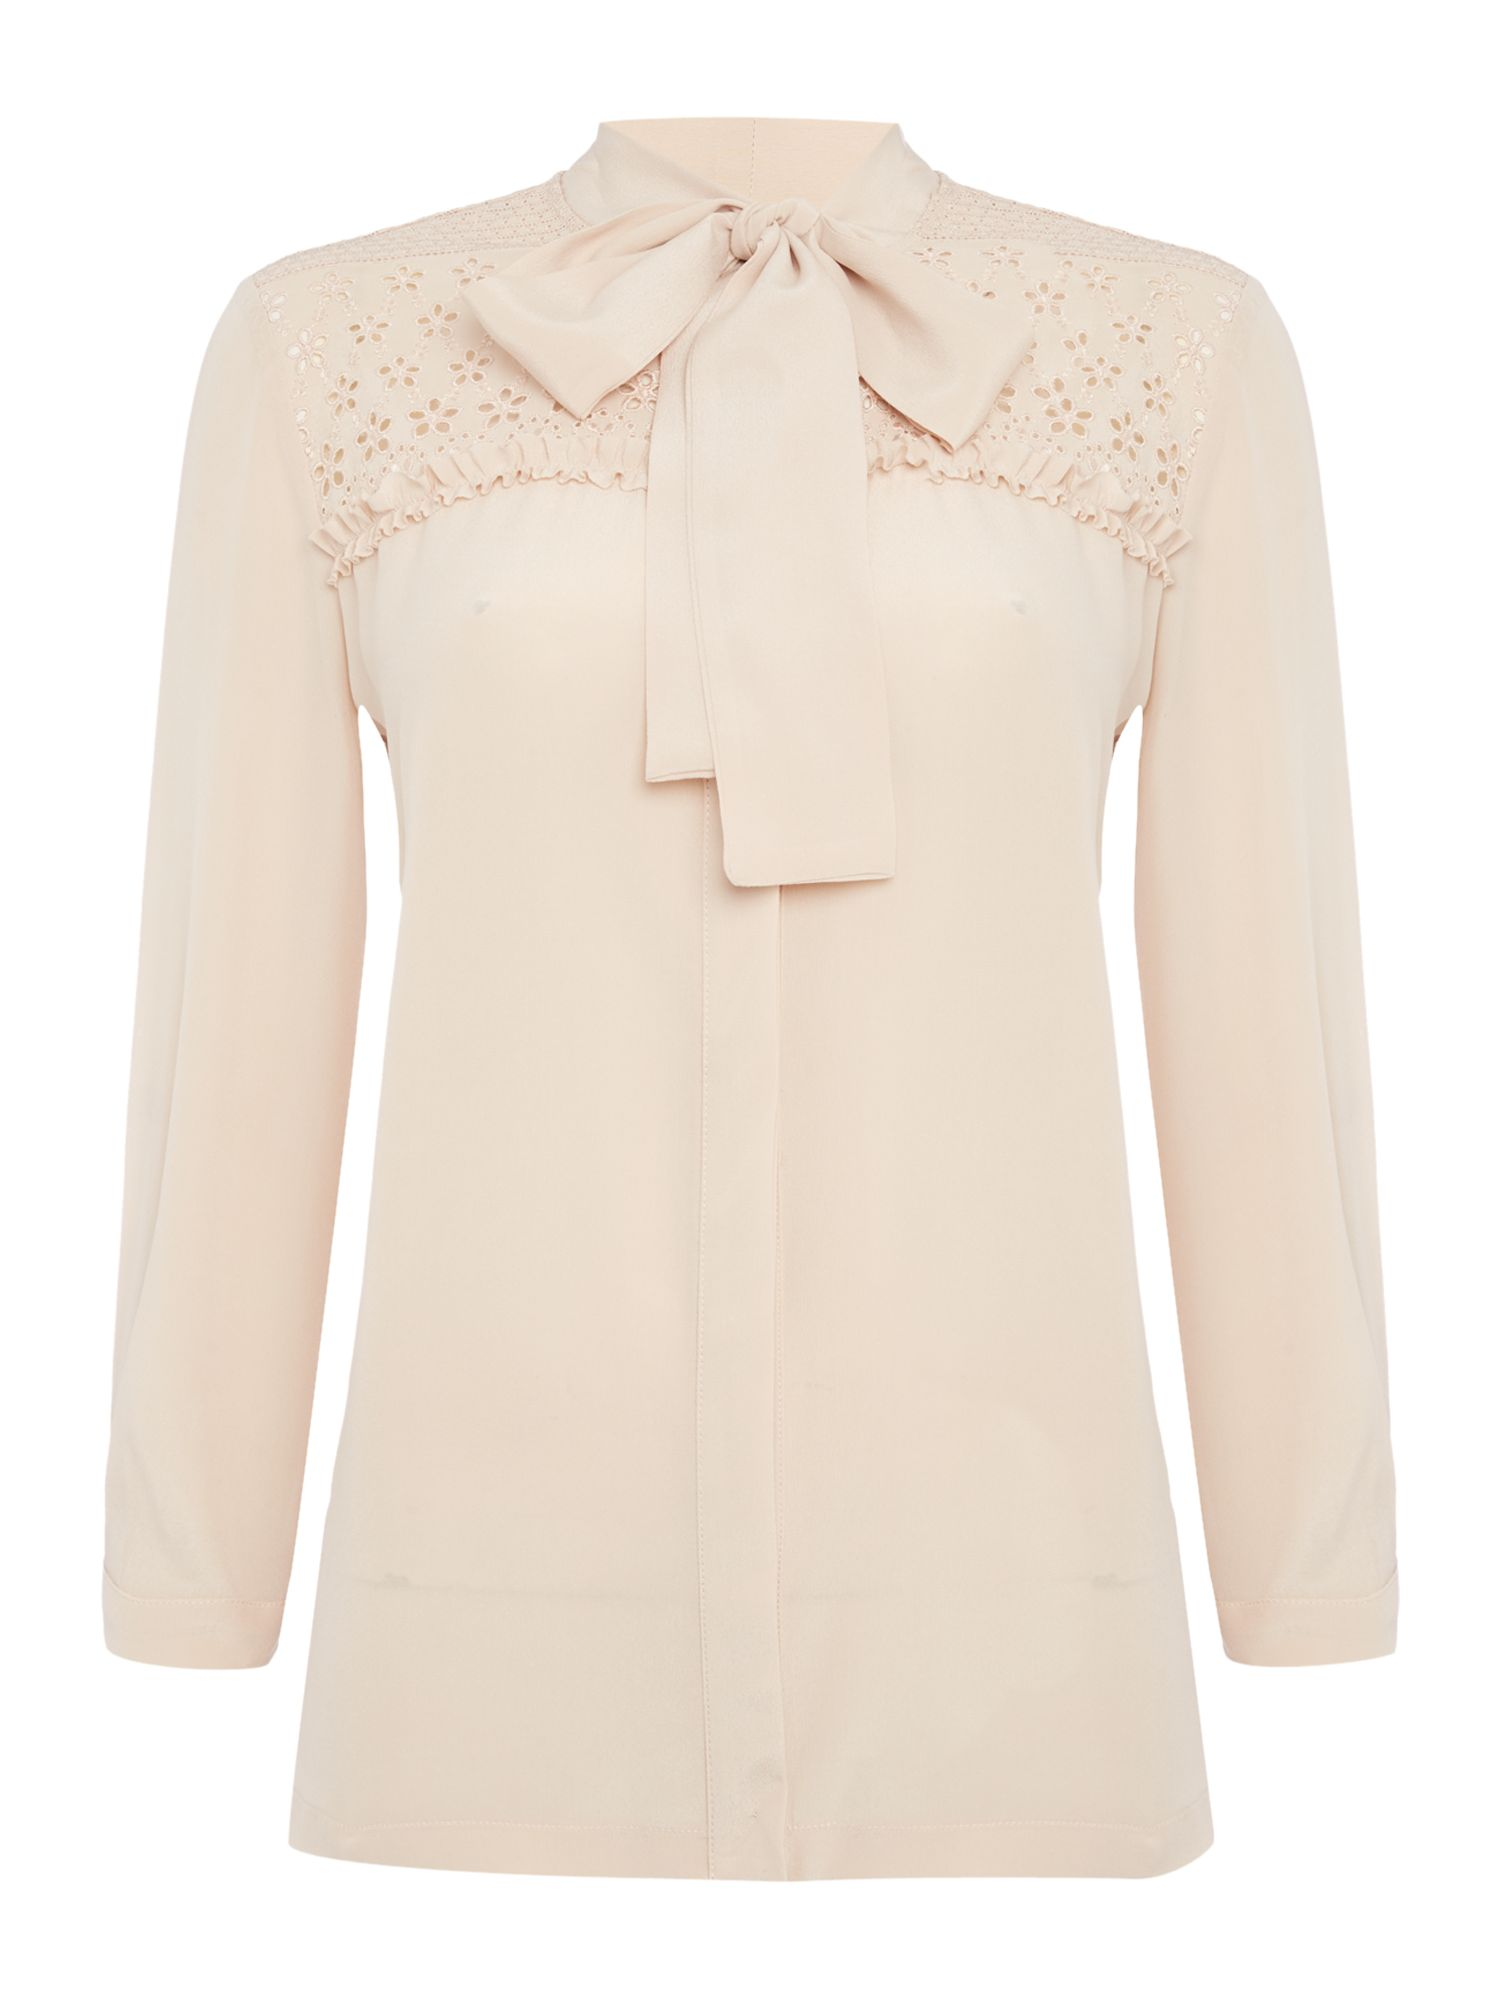 Max Mara Studio FATIMA longsleeve ruffle shirt with pussy bow, Powder Pink